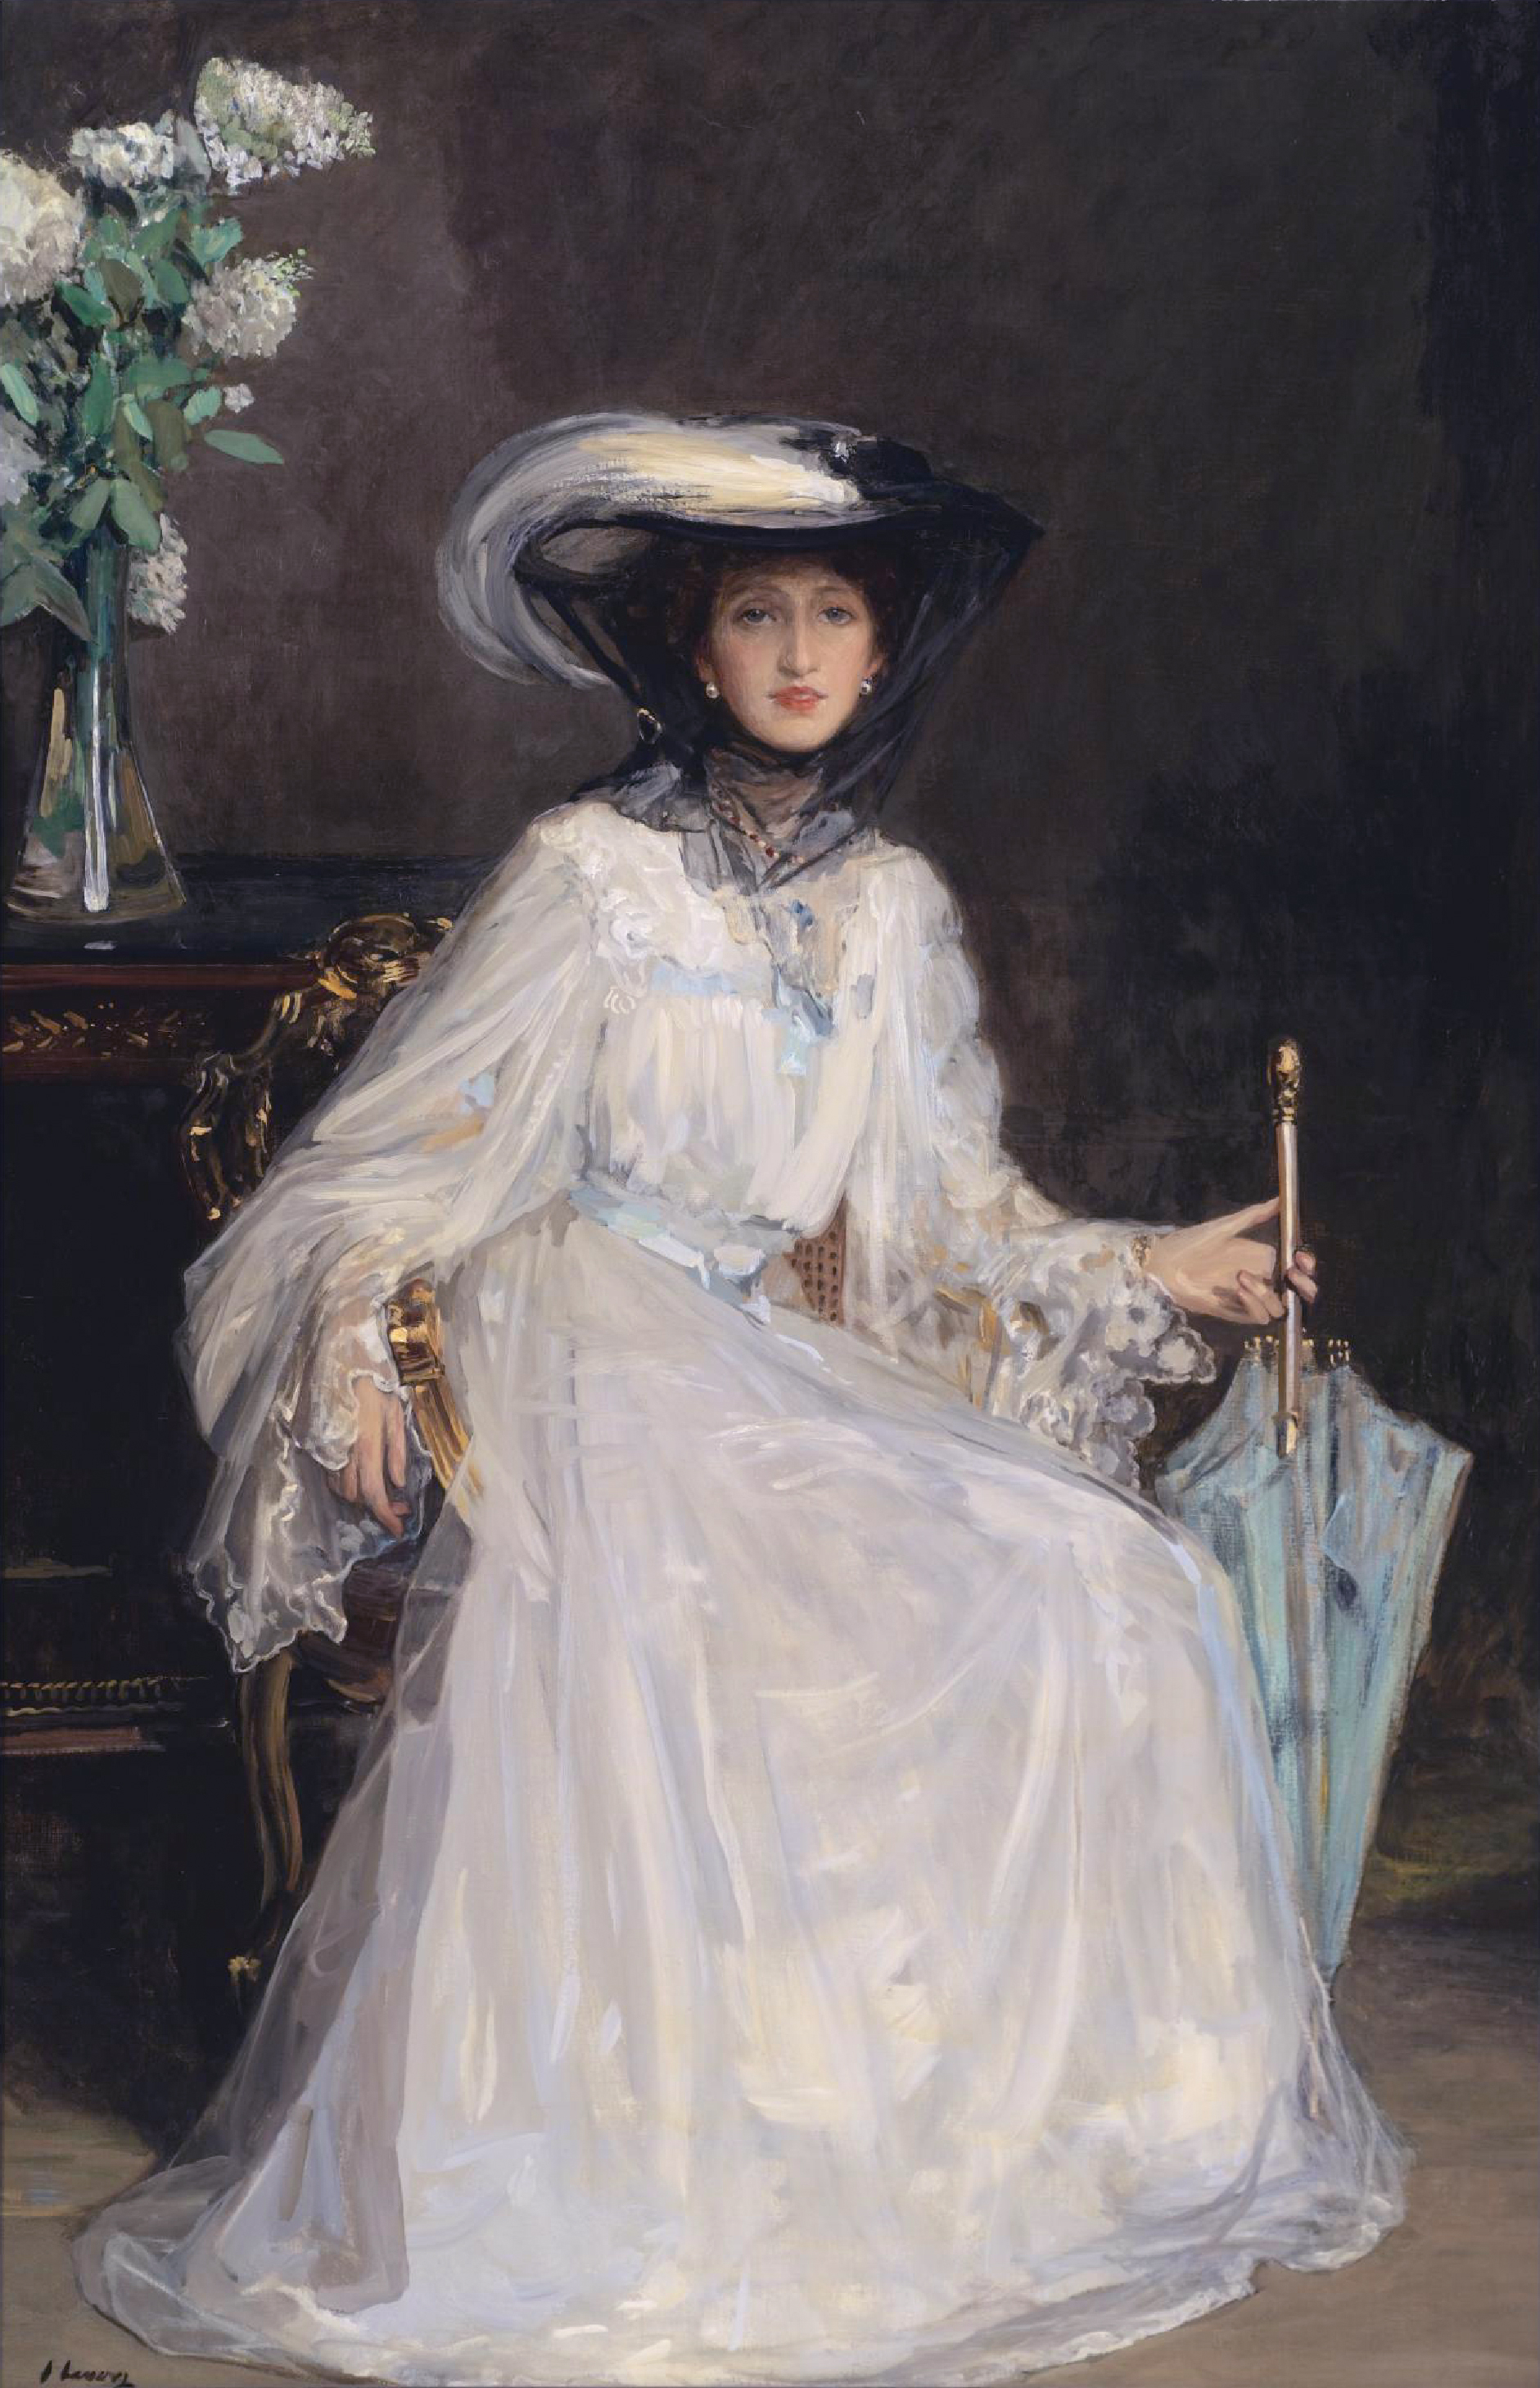 Evelyn Farquhar by John Lavery